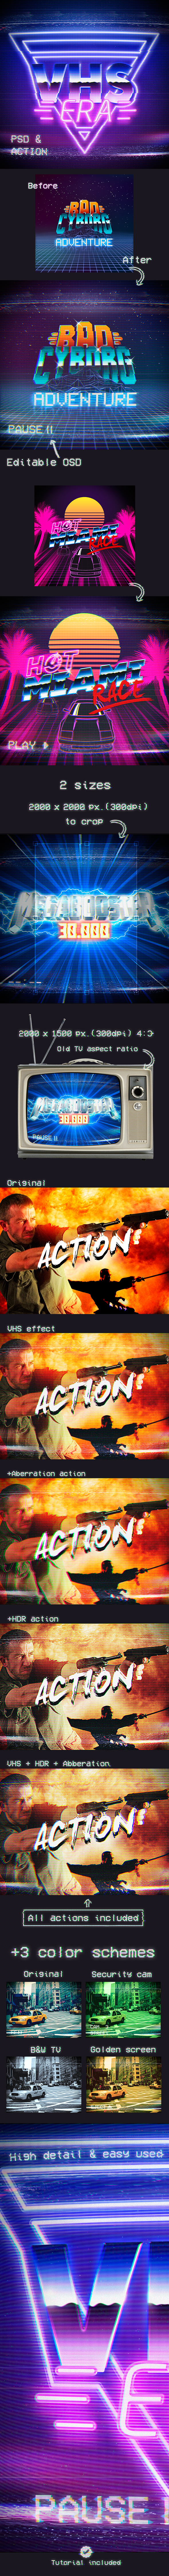 VHS Era - Photo Effects Actions